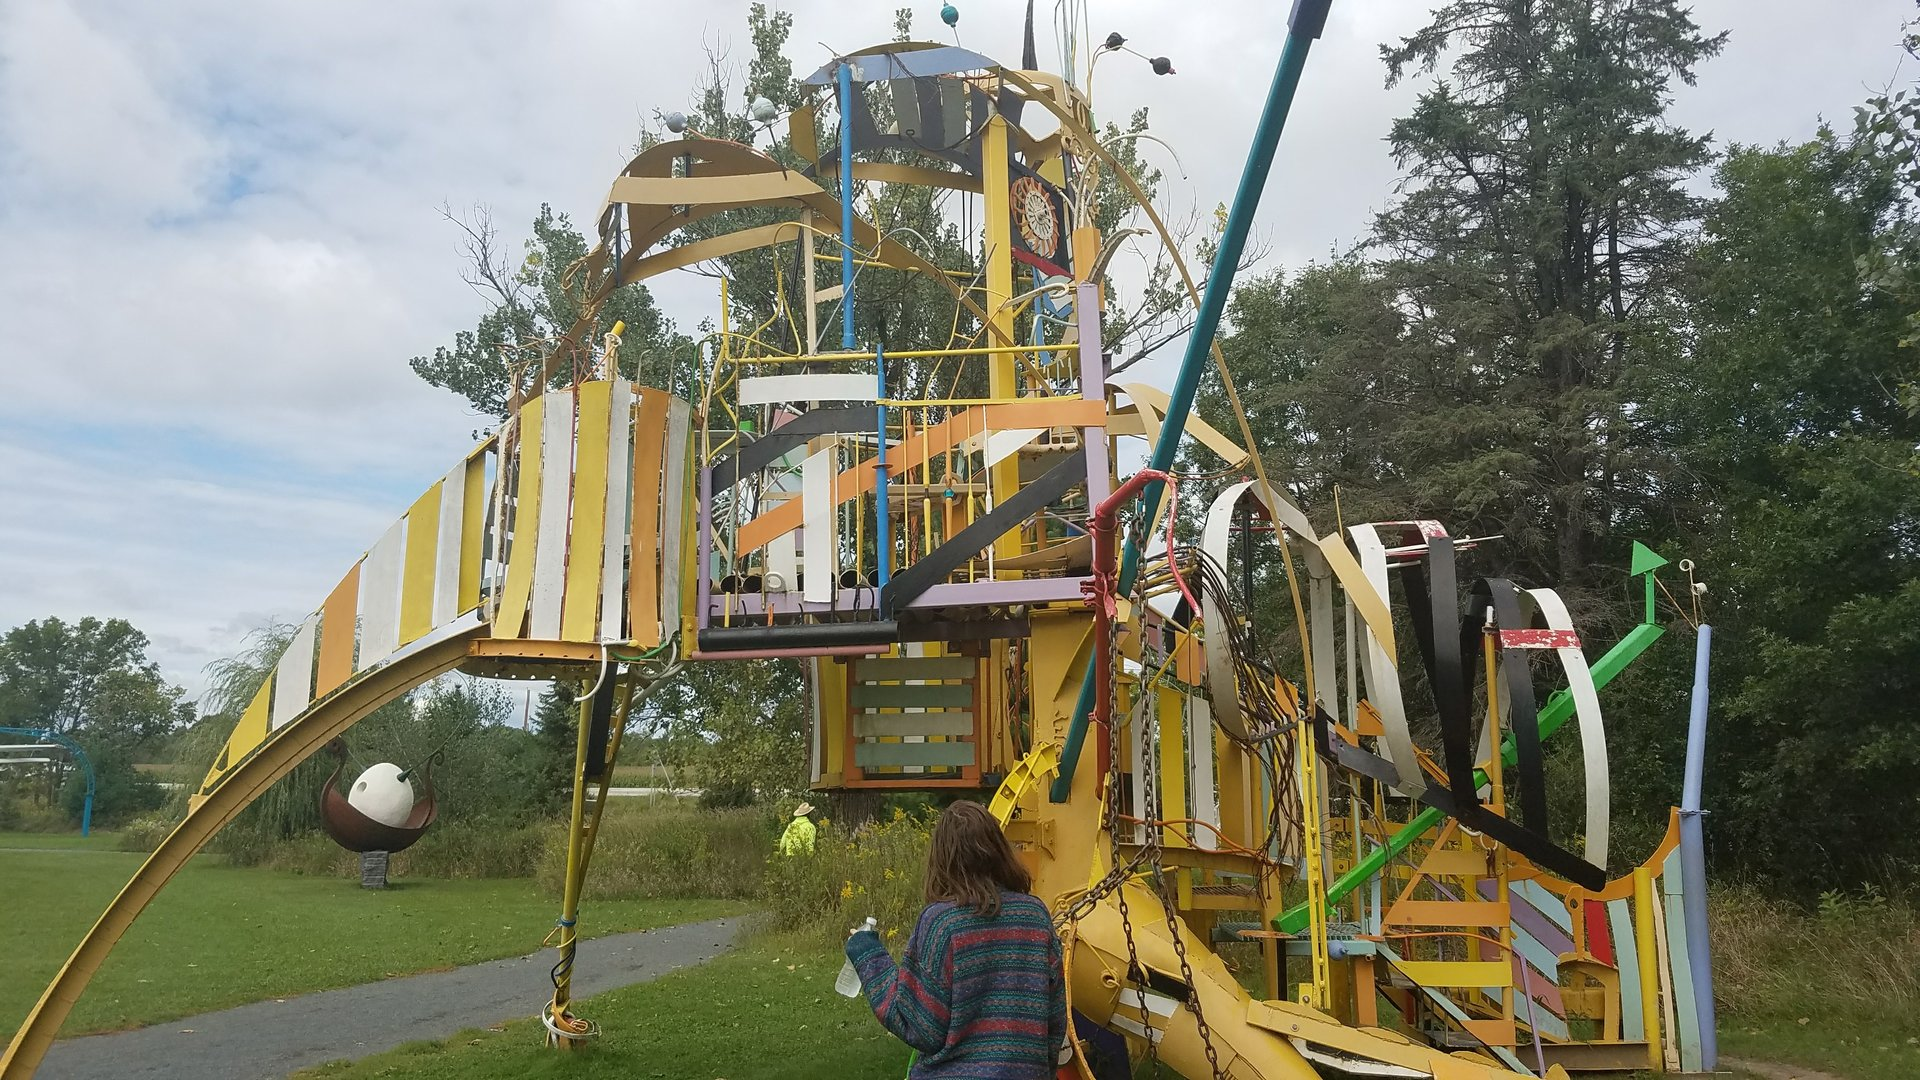 20170906_125426-jpg.39868_Insane psychedelic playground in the middle of nowhere_Travel Stories_Squat the Planet_11:22 PM